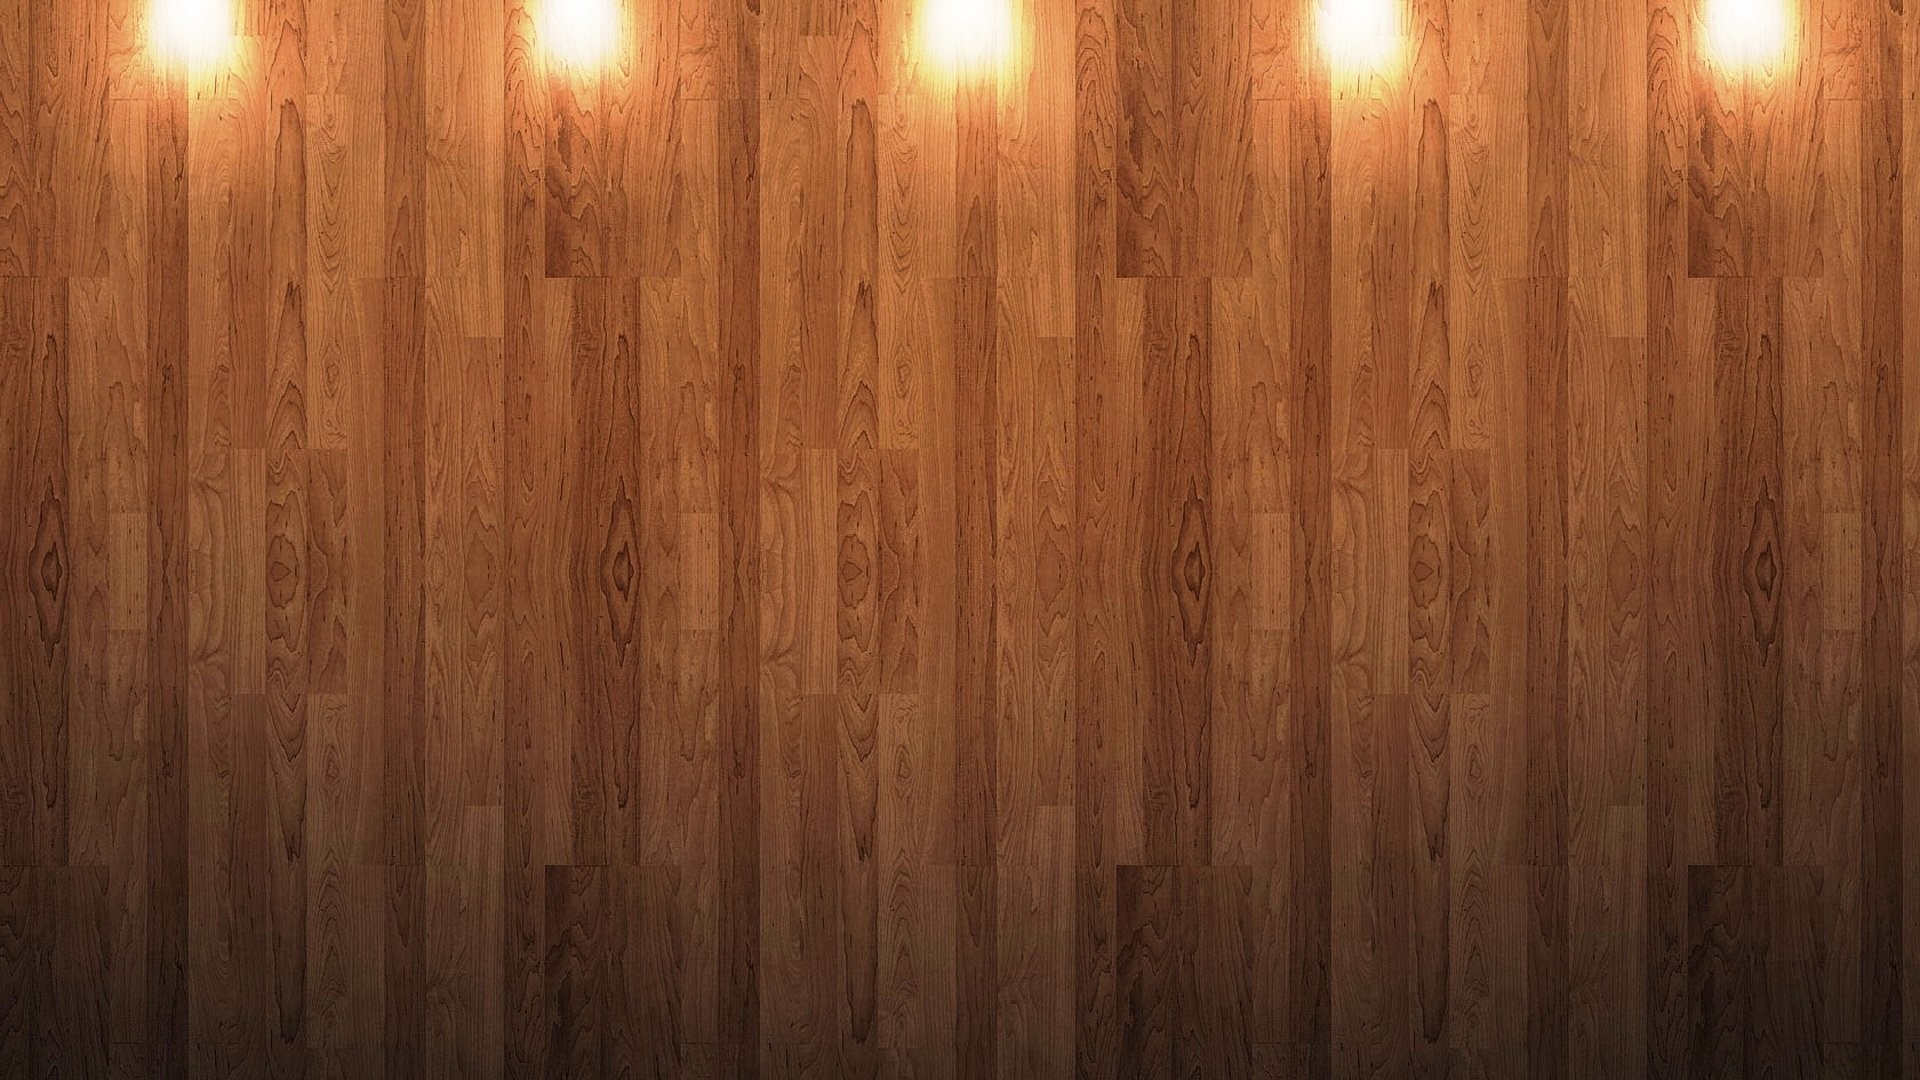 1920x1080 Wood Wallpaper Background 9